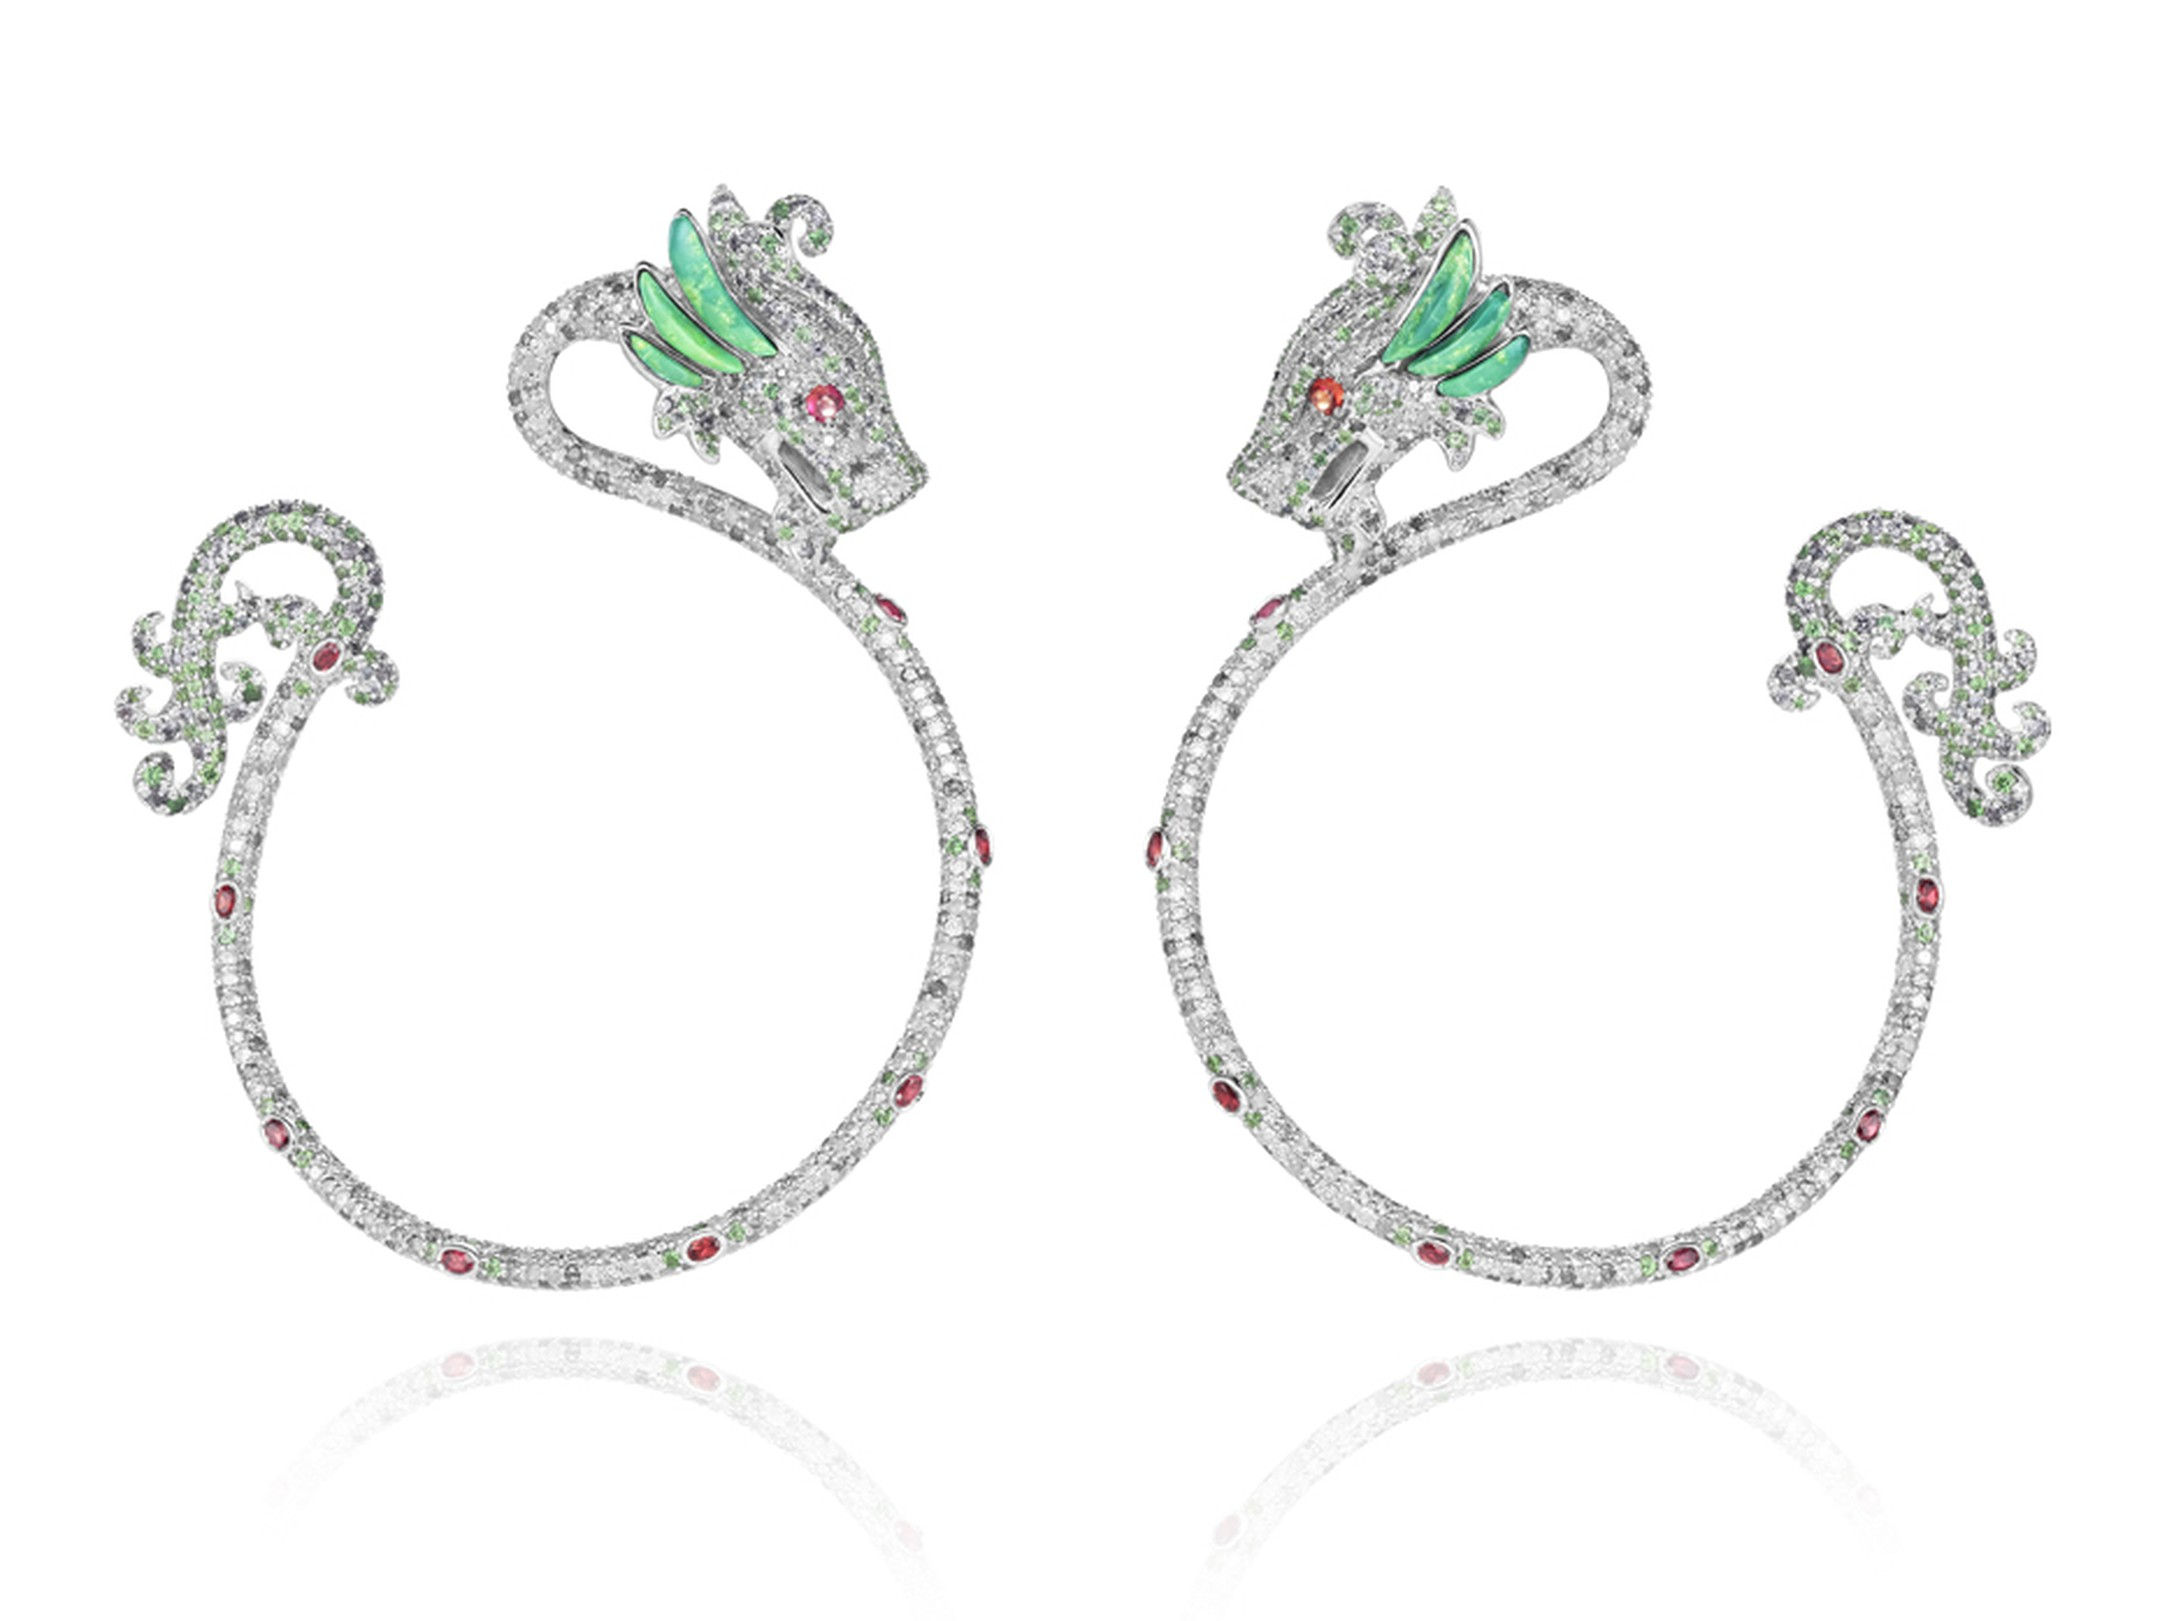 Harumi for Chopard Dragon earrings with rubies, diamonds, emeralds and turquoise